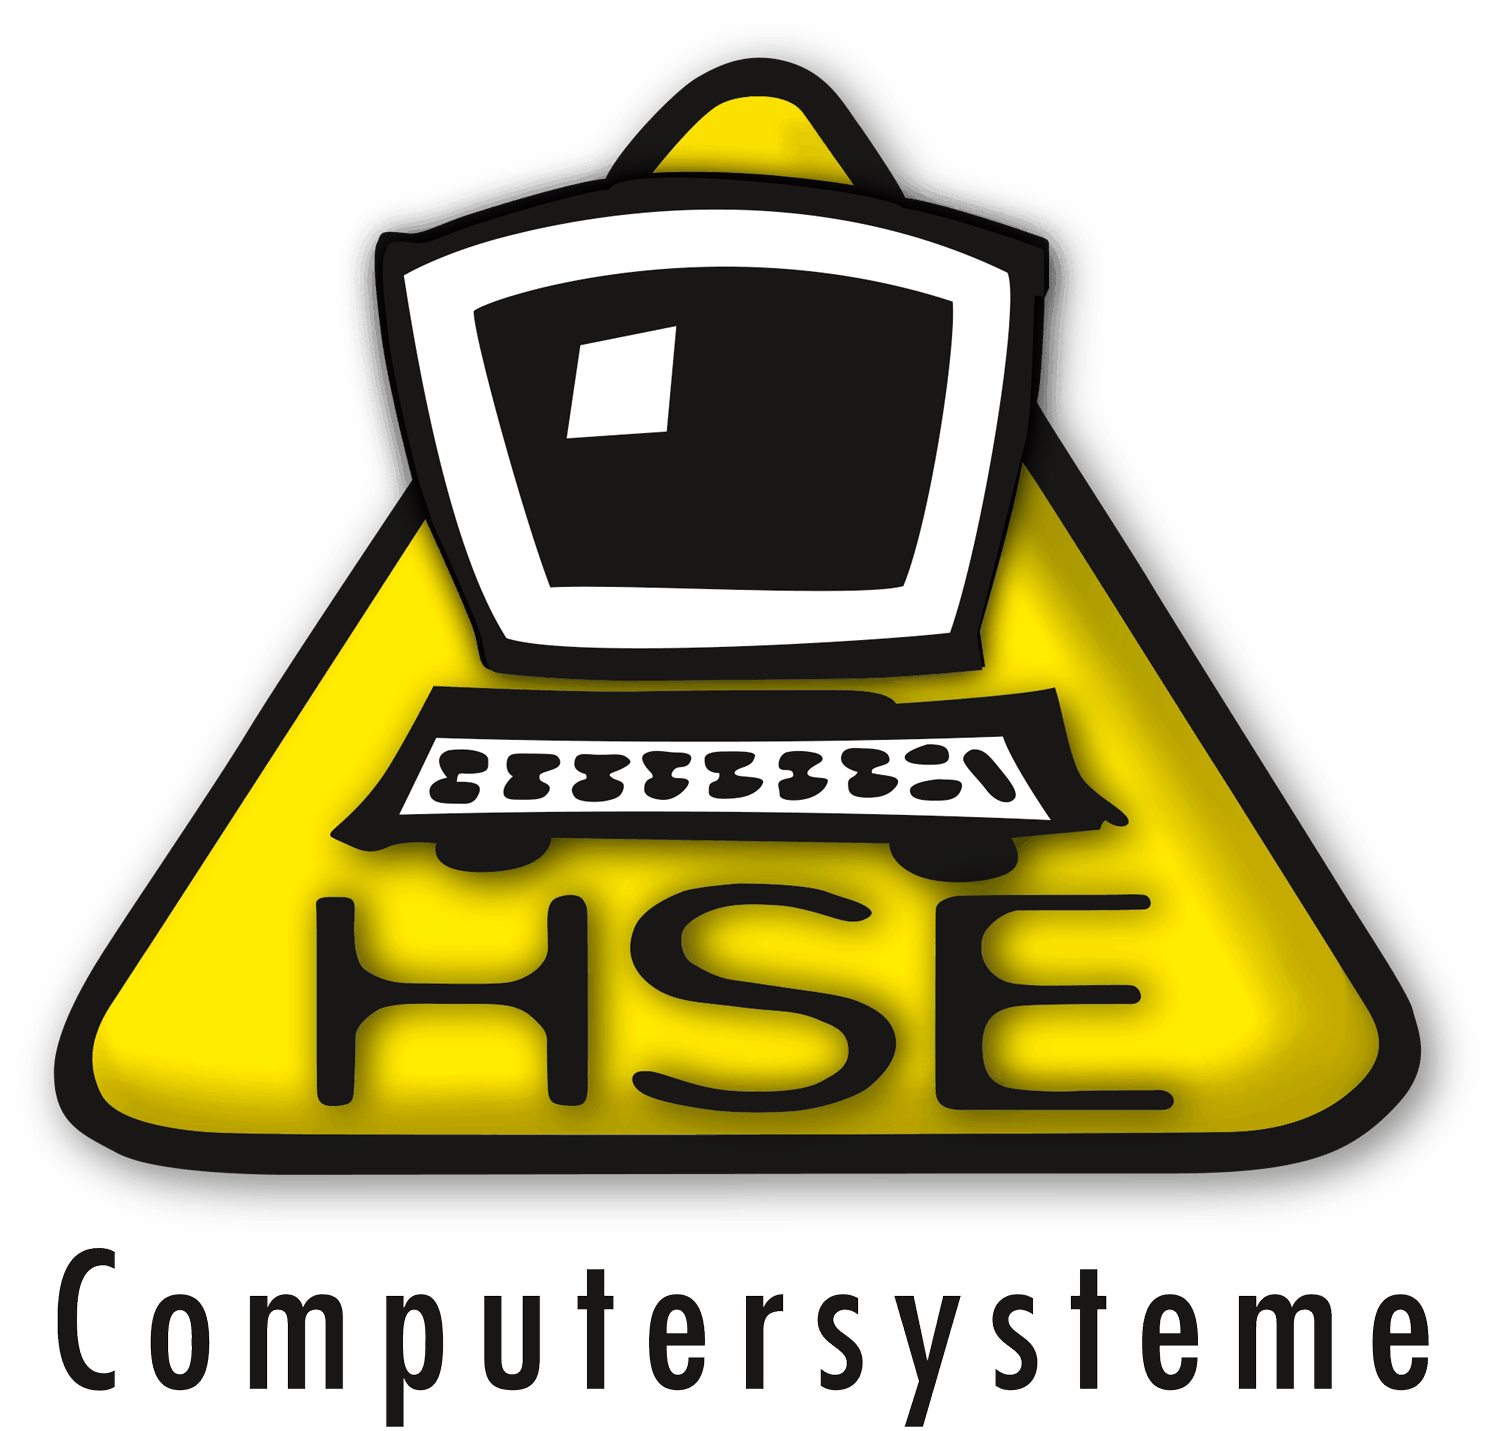 HSE Logo Druck 1500x1431 1 - HSE Computersysteme - IT aus Ostwestfalen